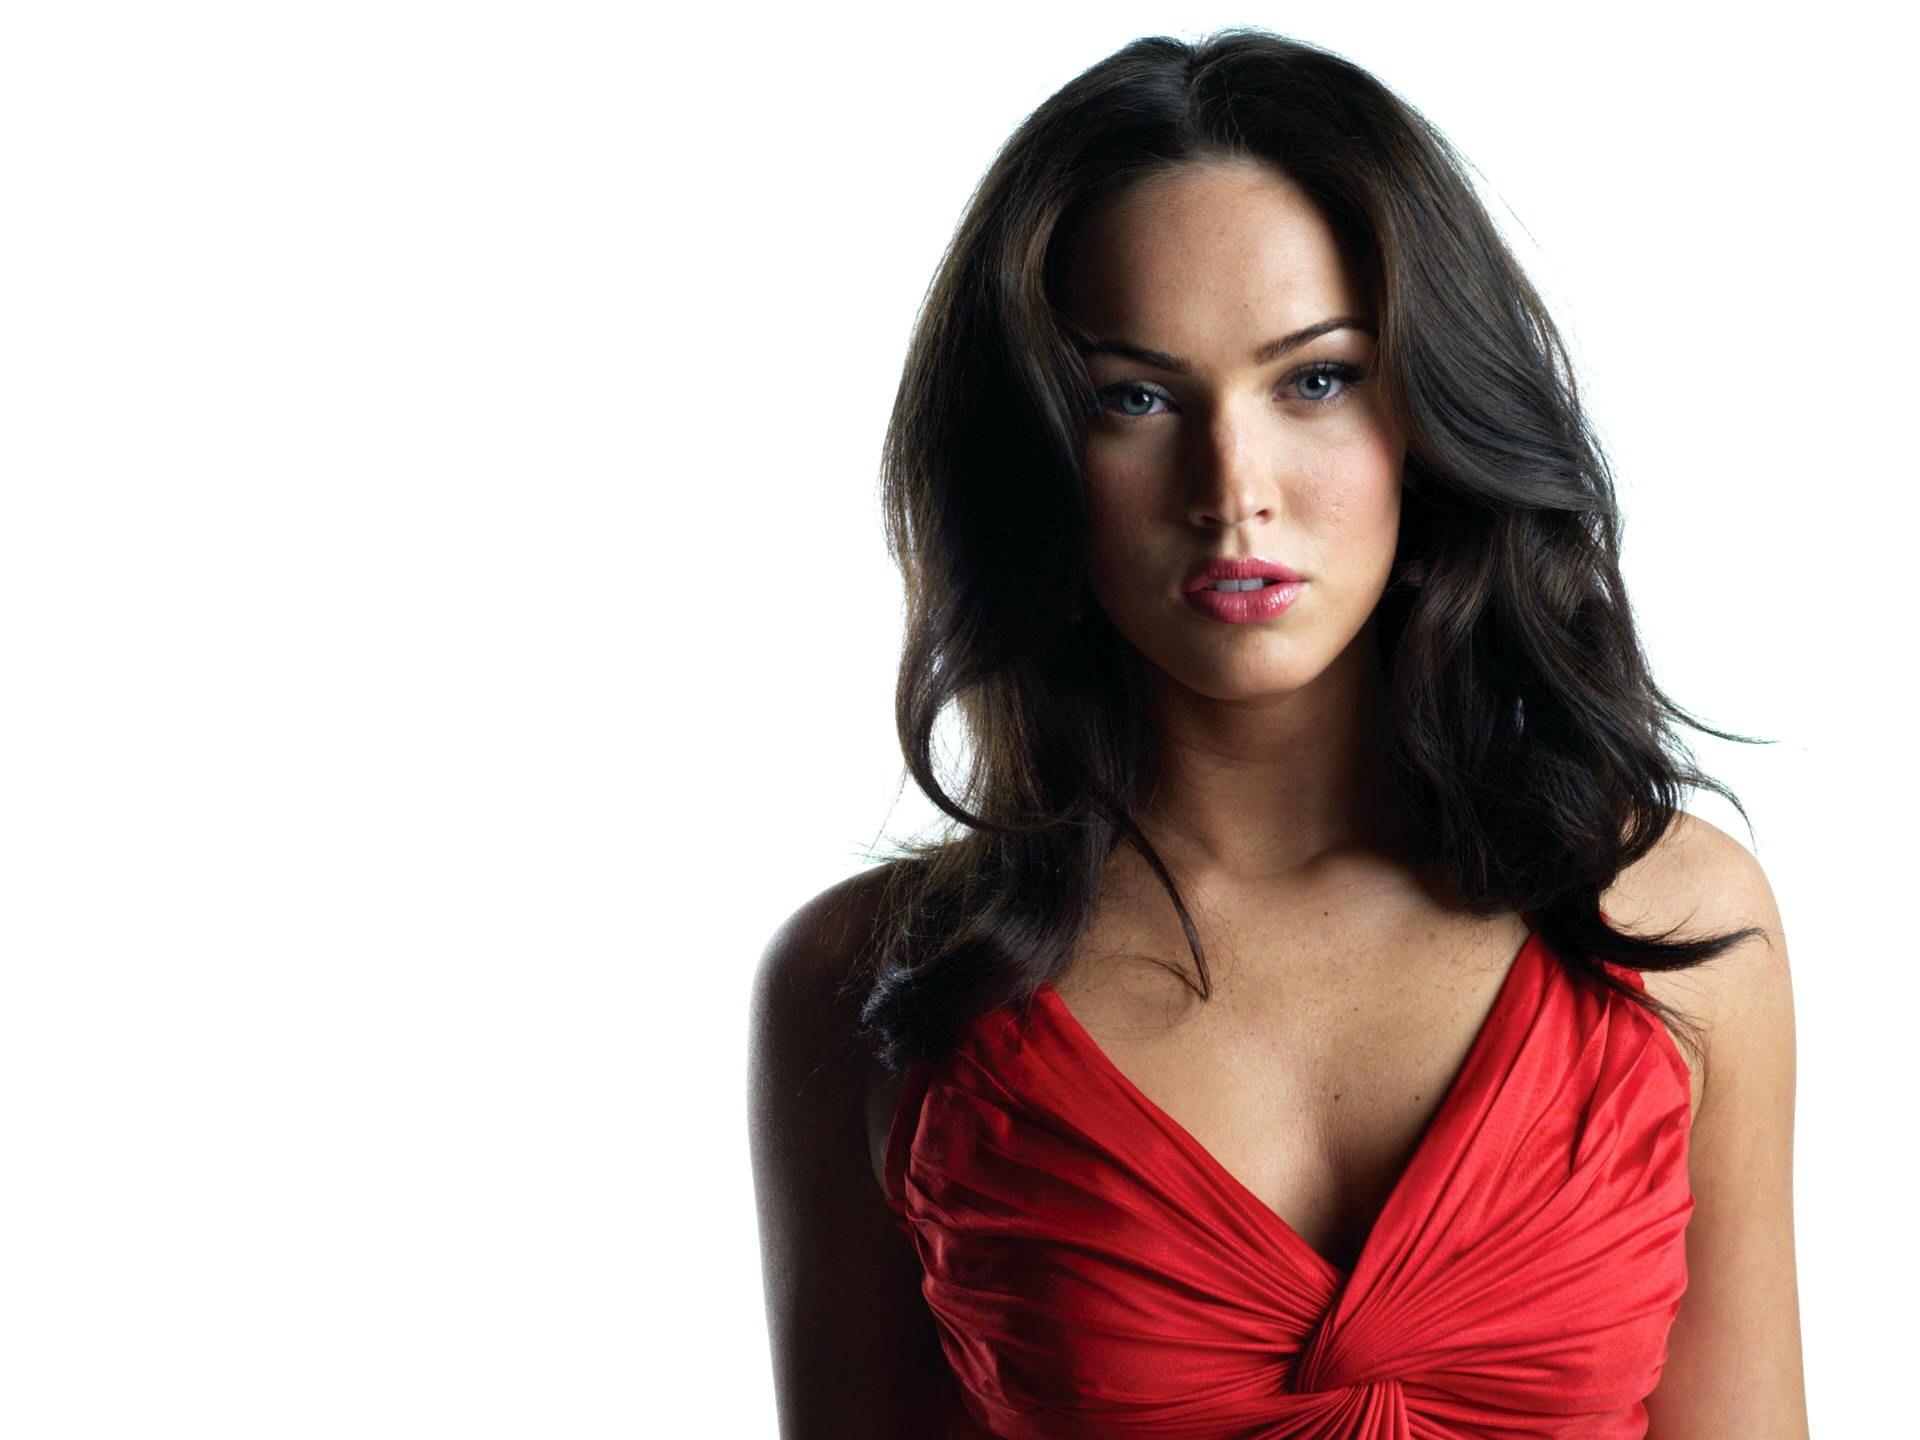 megan fox wallpapers hd A4